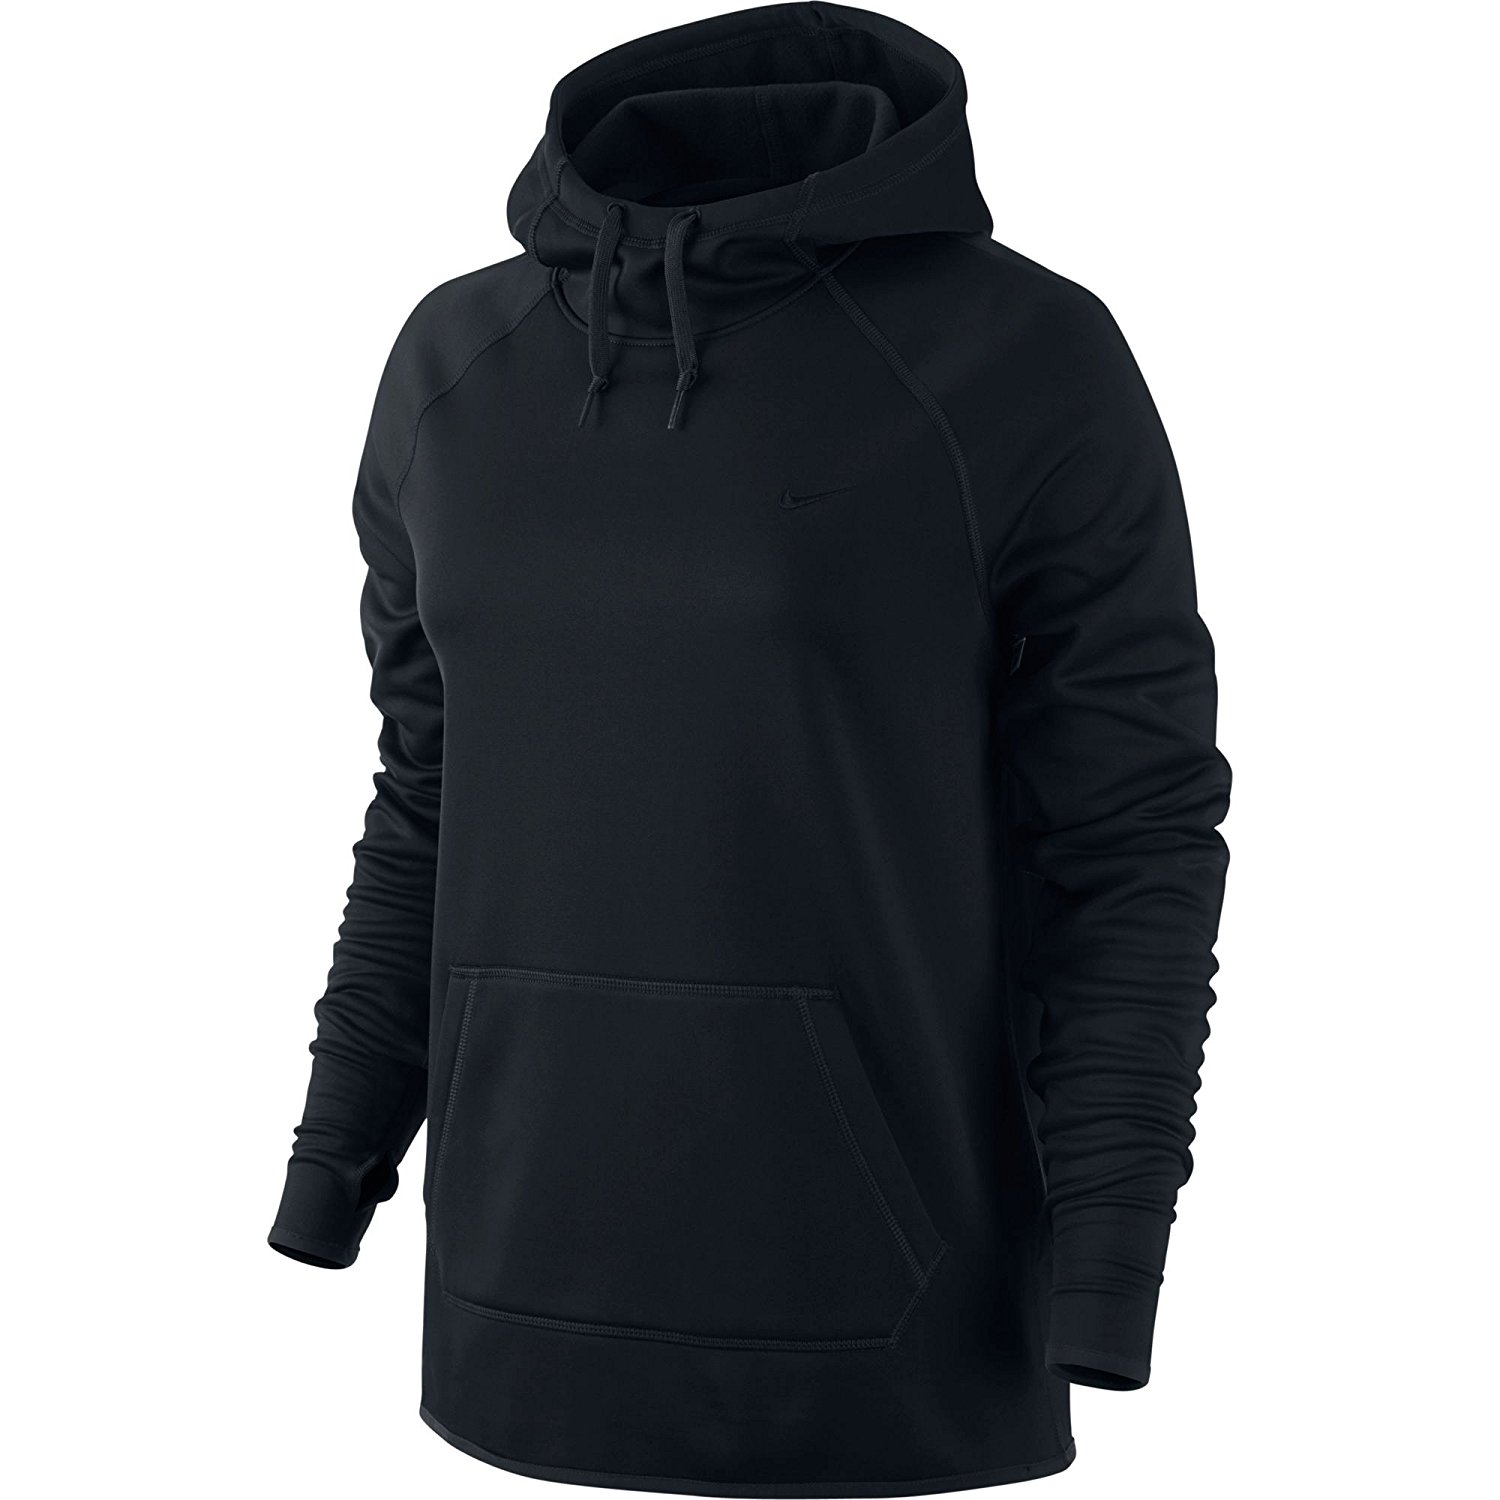 5a1aaedff016 Get Quotations · Women s Nike Therma Training Hoodie